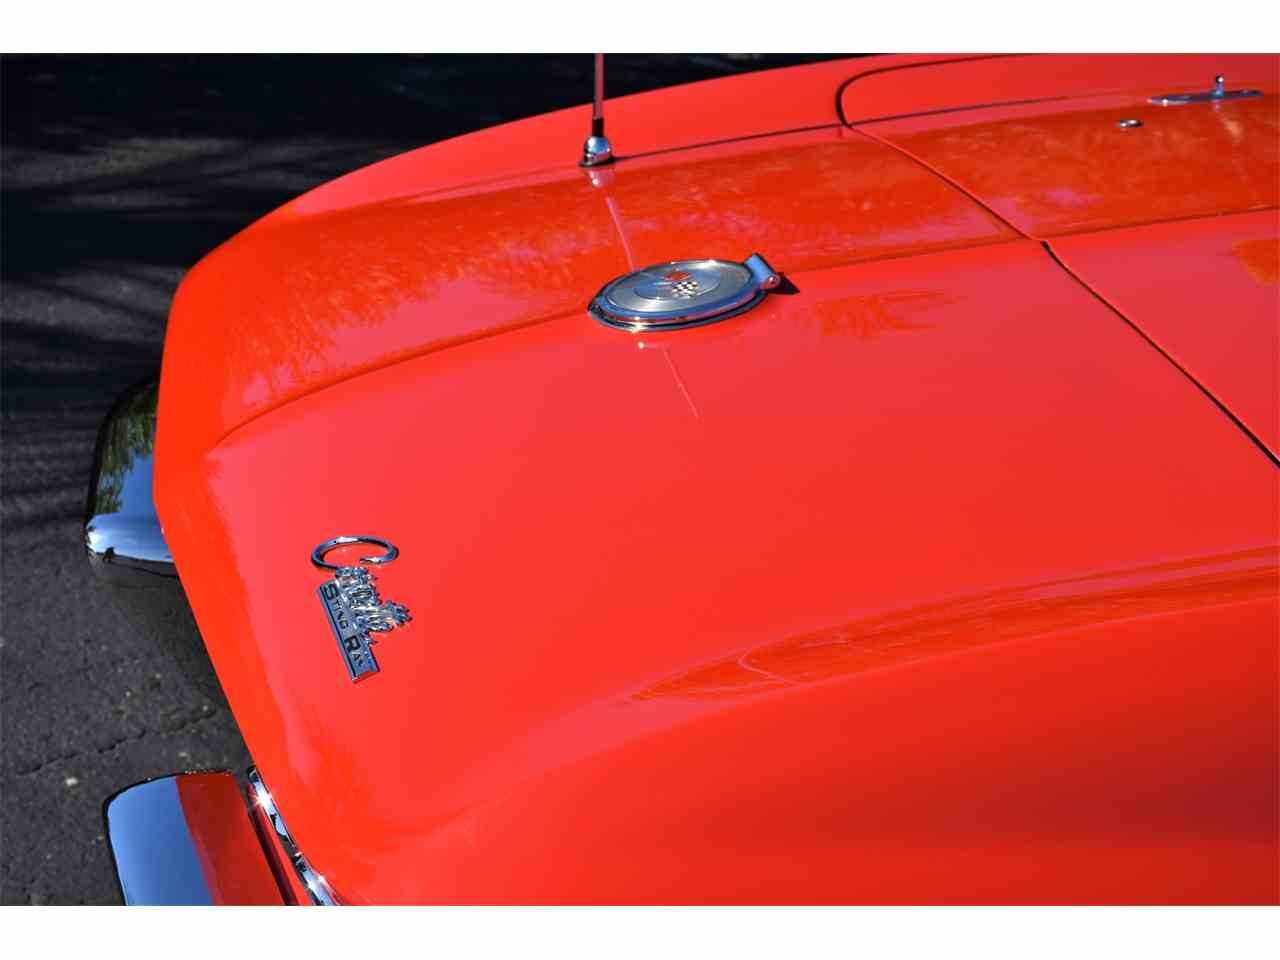 Large Picture of Classic '64 Corvette located in Florida Auction Vehicle Offered by Ideal Classic Cars - MCOS